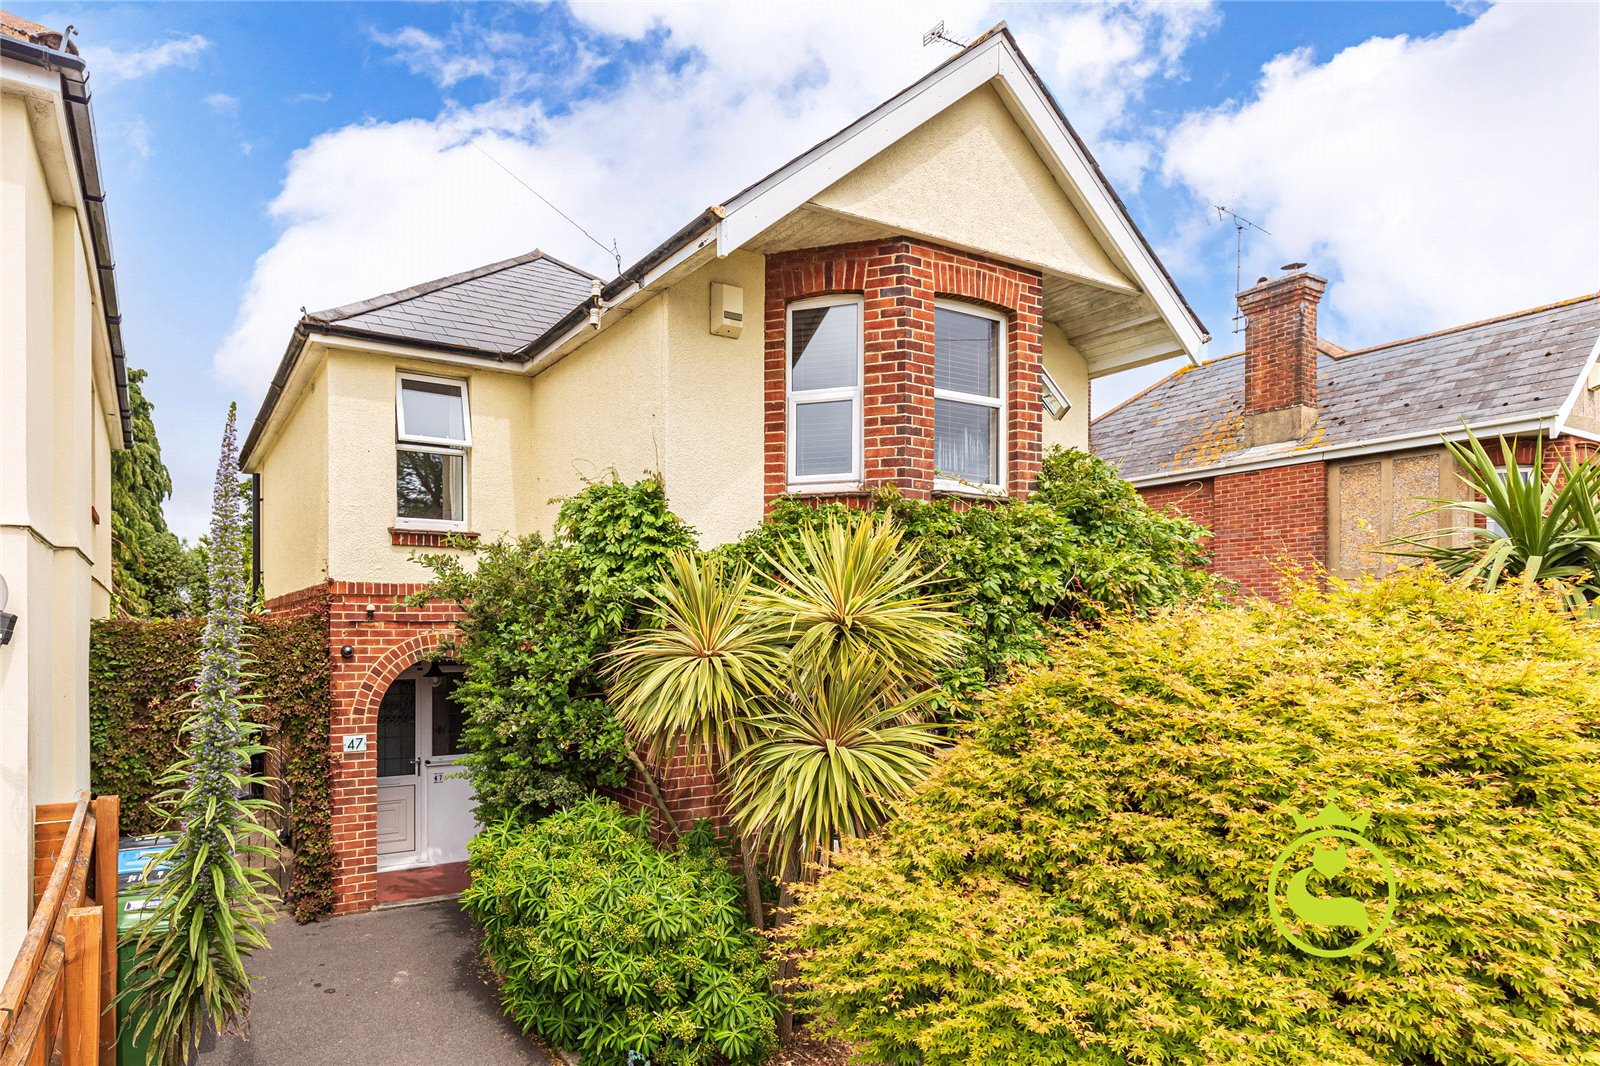 3 bed house for sale in Chatsworth Road, Parkstone, BH14